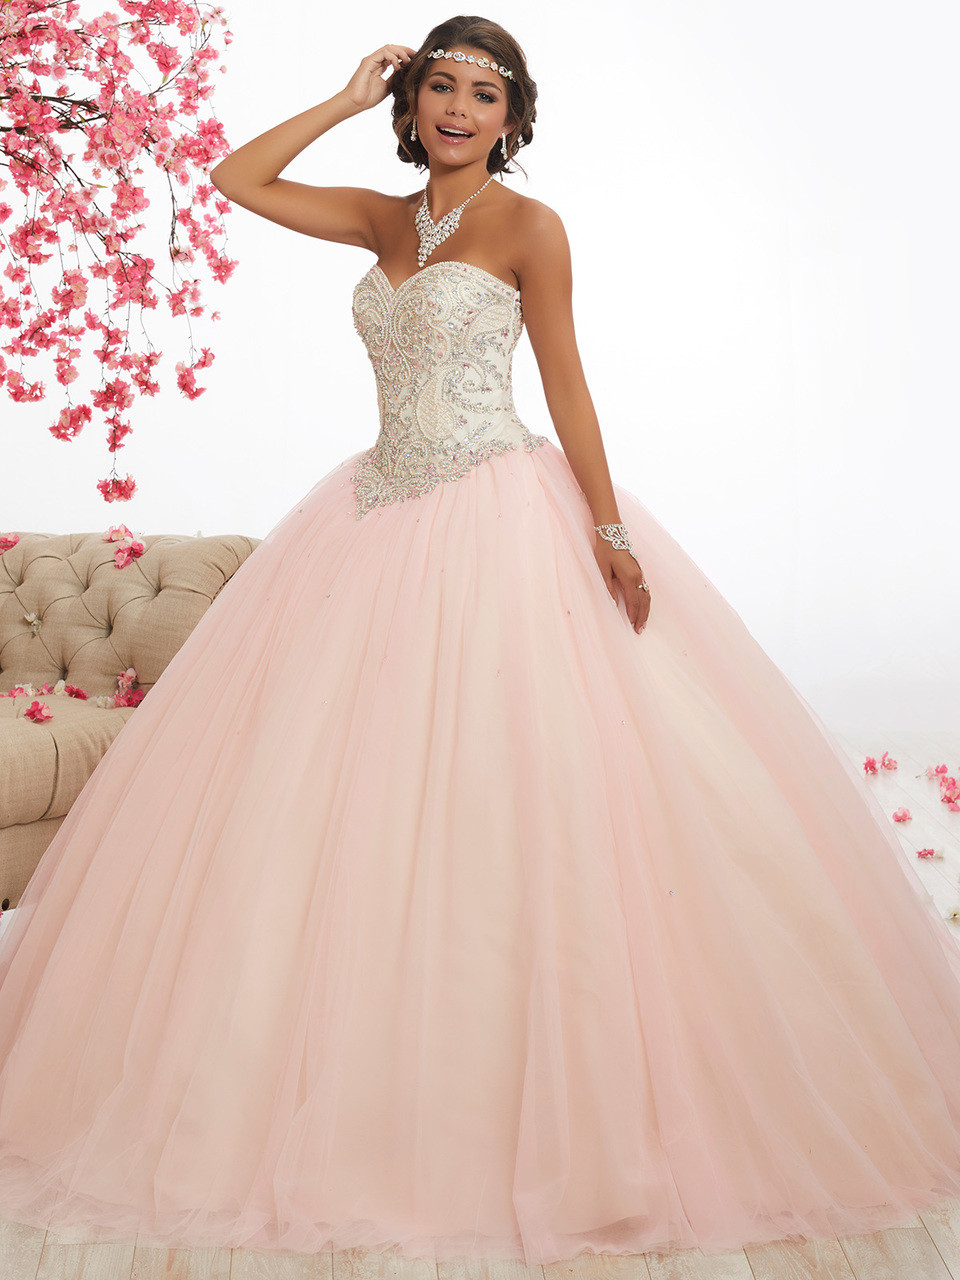 78e72791ce5 cream and pink strapples quinceanera dress with plain skirt in tulle by  fiesta 56337